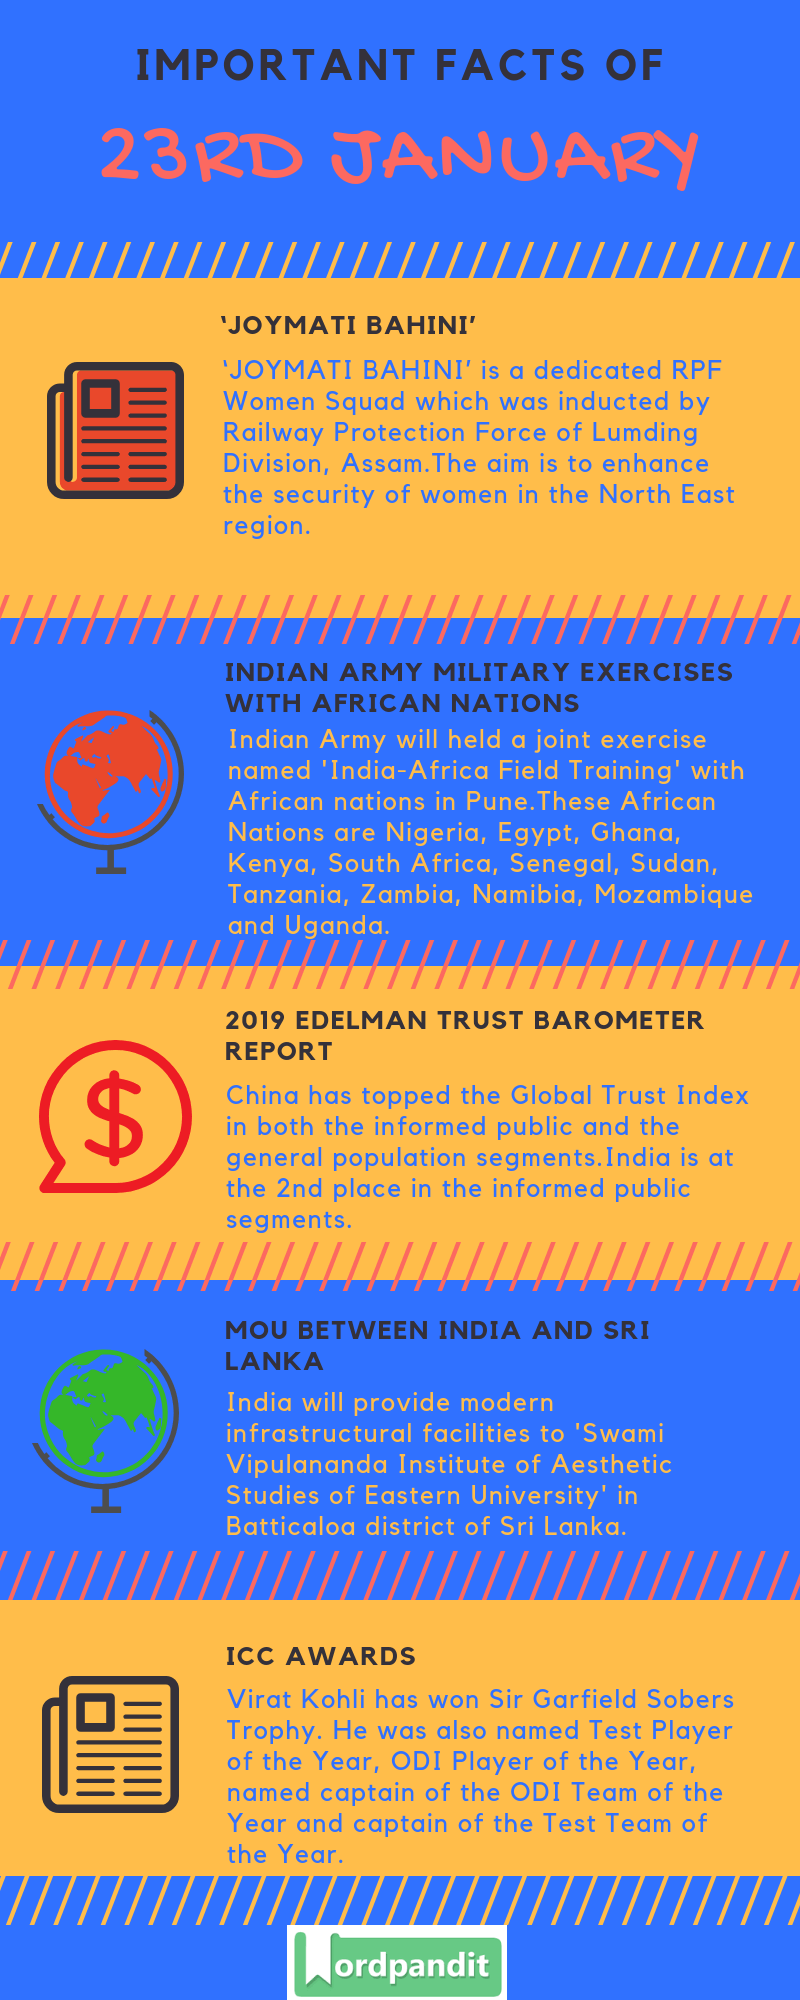 Daily Current Affairs 23 January 2019 Current Affairs Quiz 23 January 2019 Current Affairs Infographic